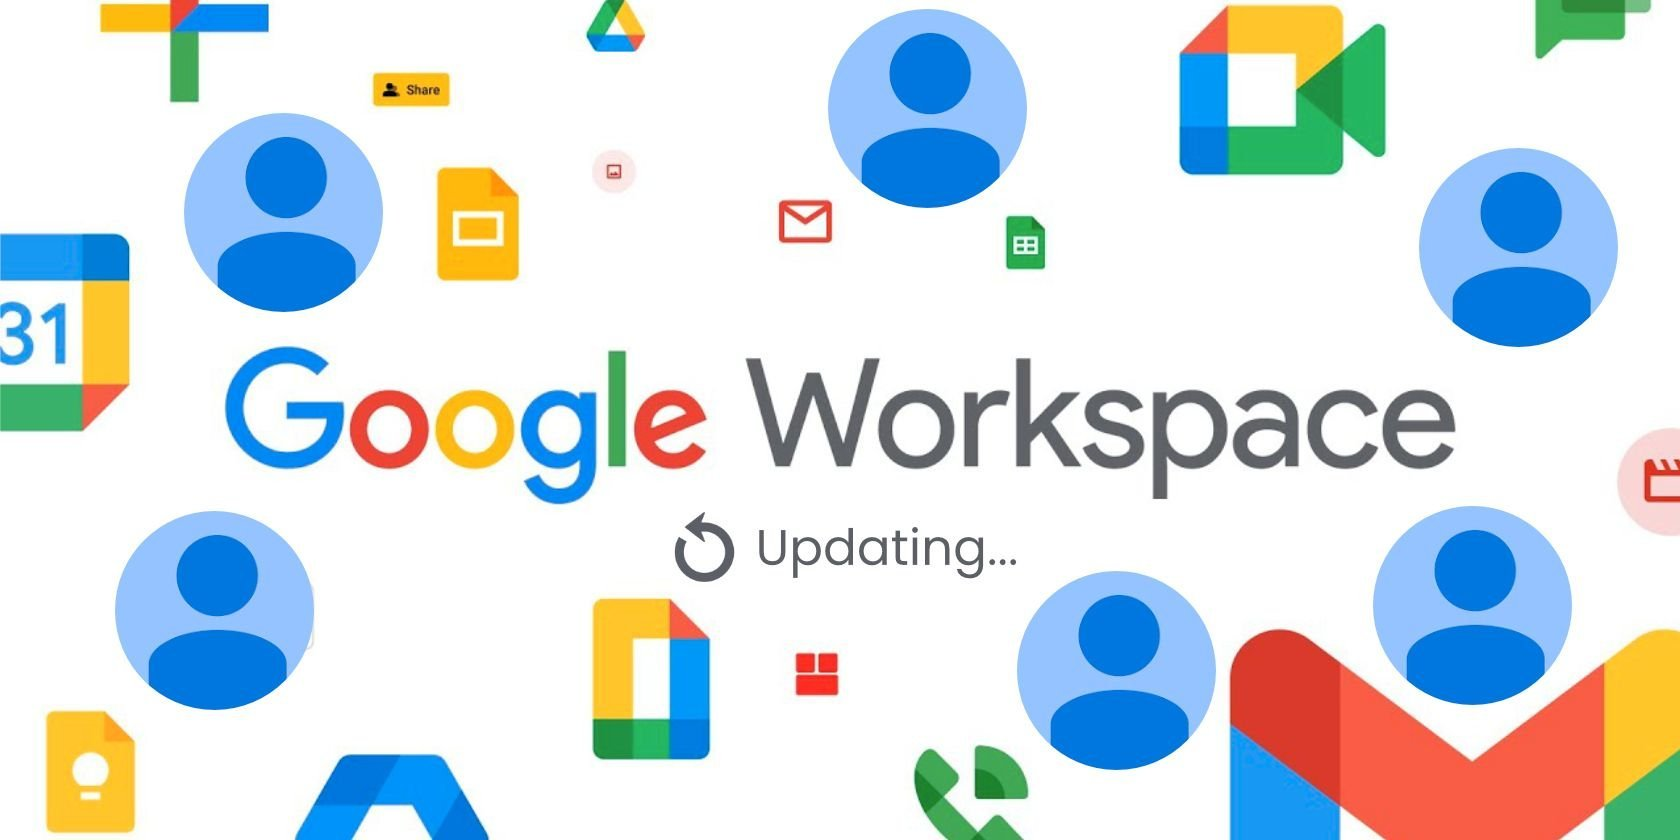 Google Opens Workspace to Everyone With a Google Account